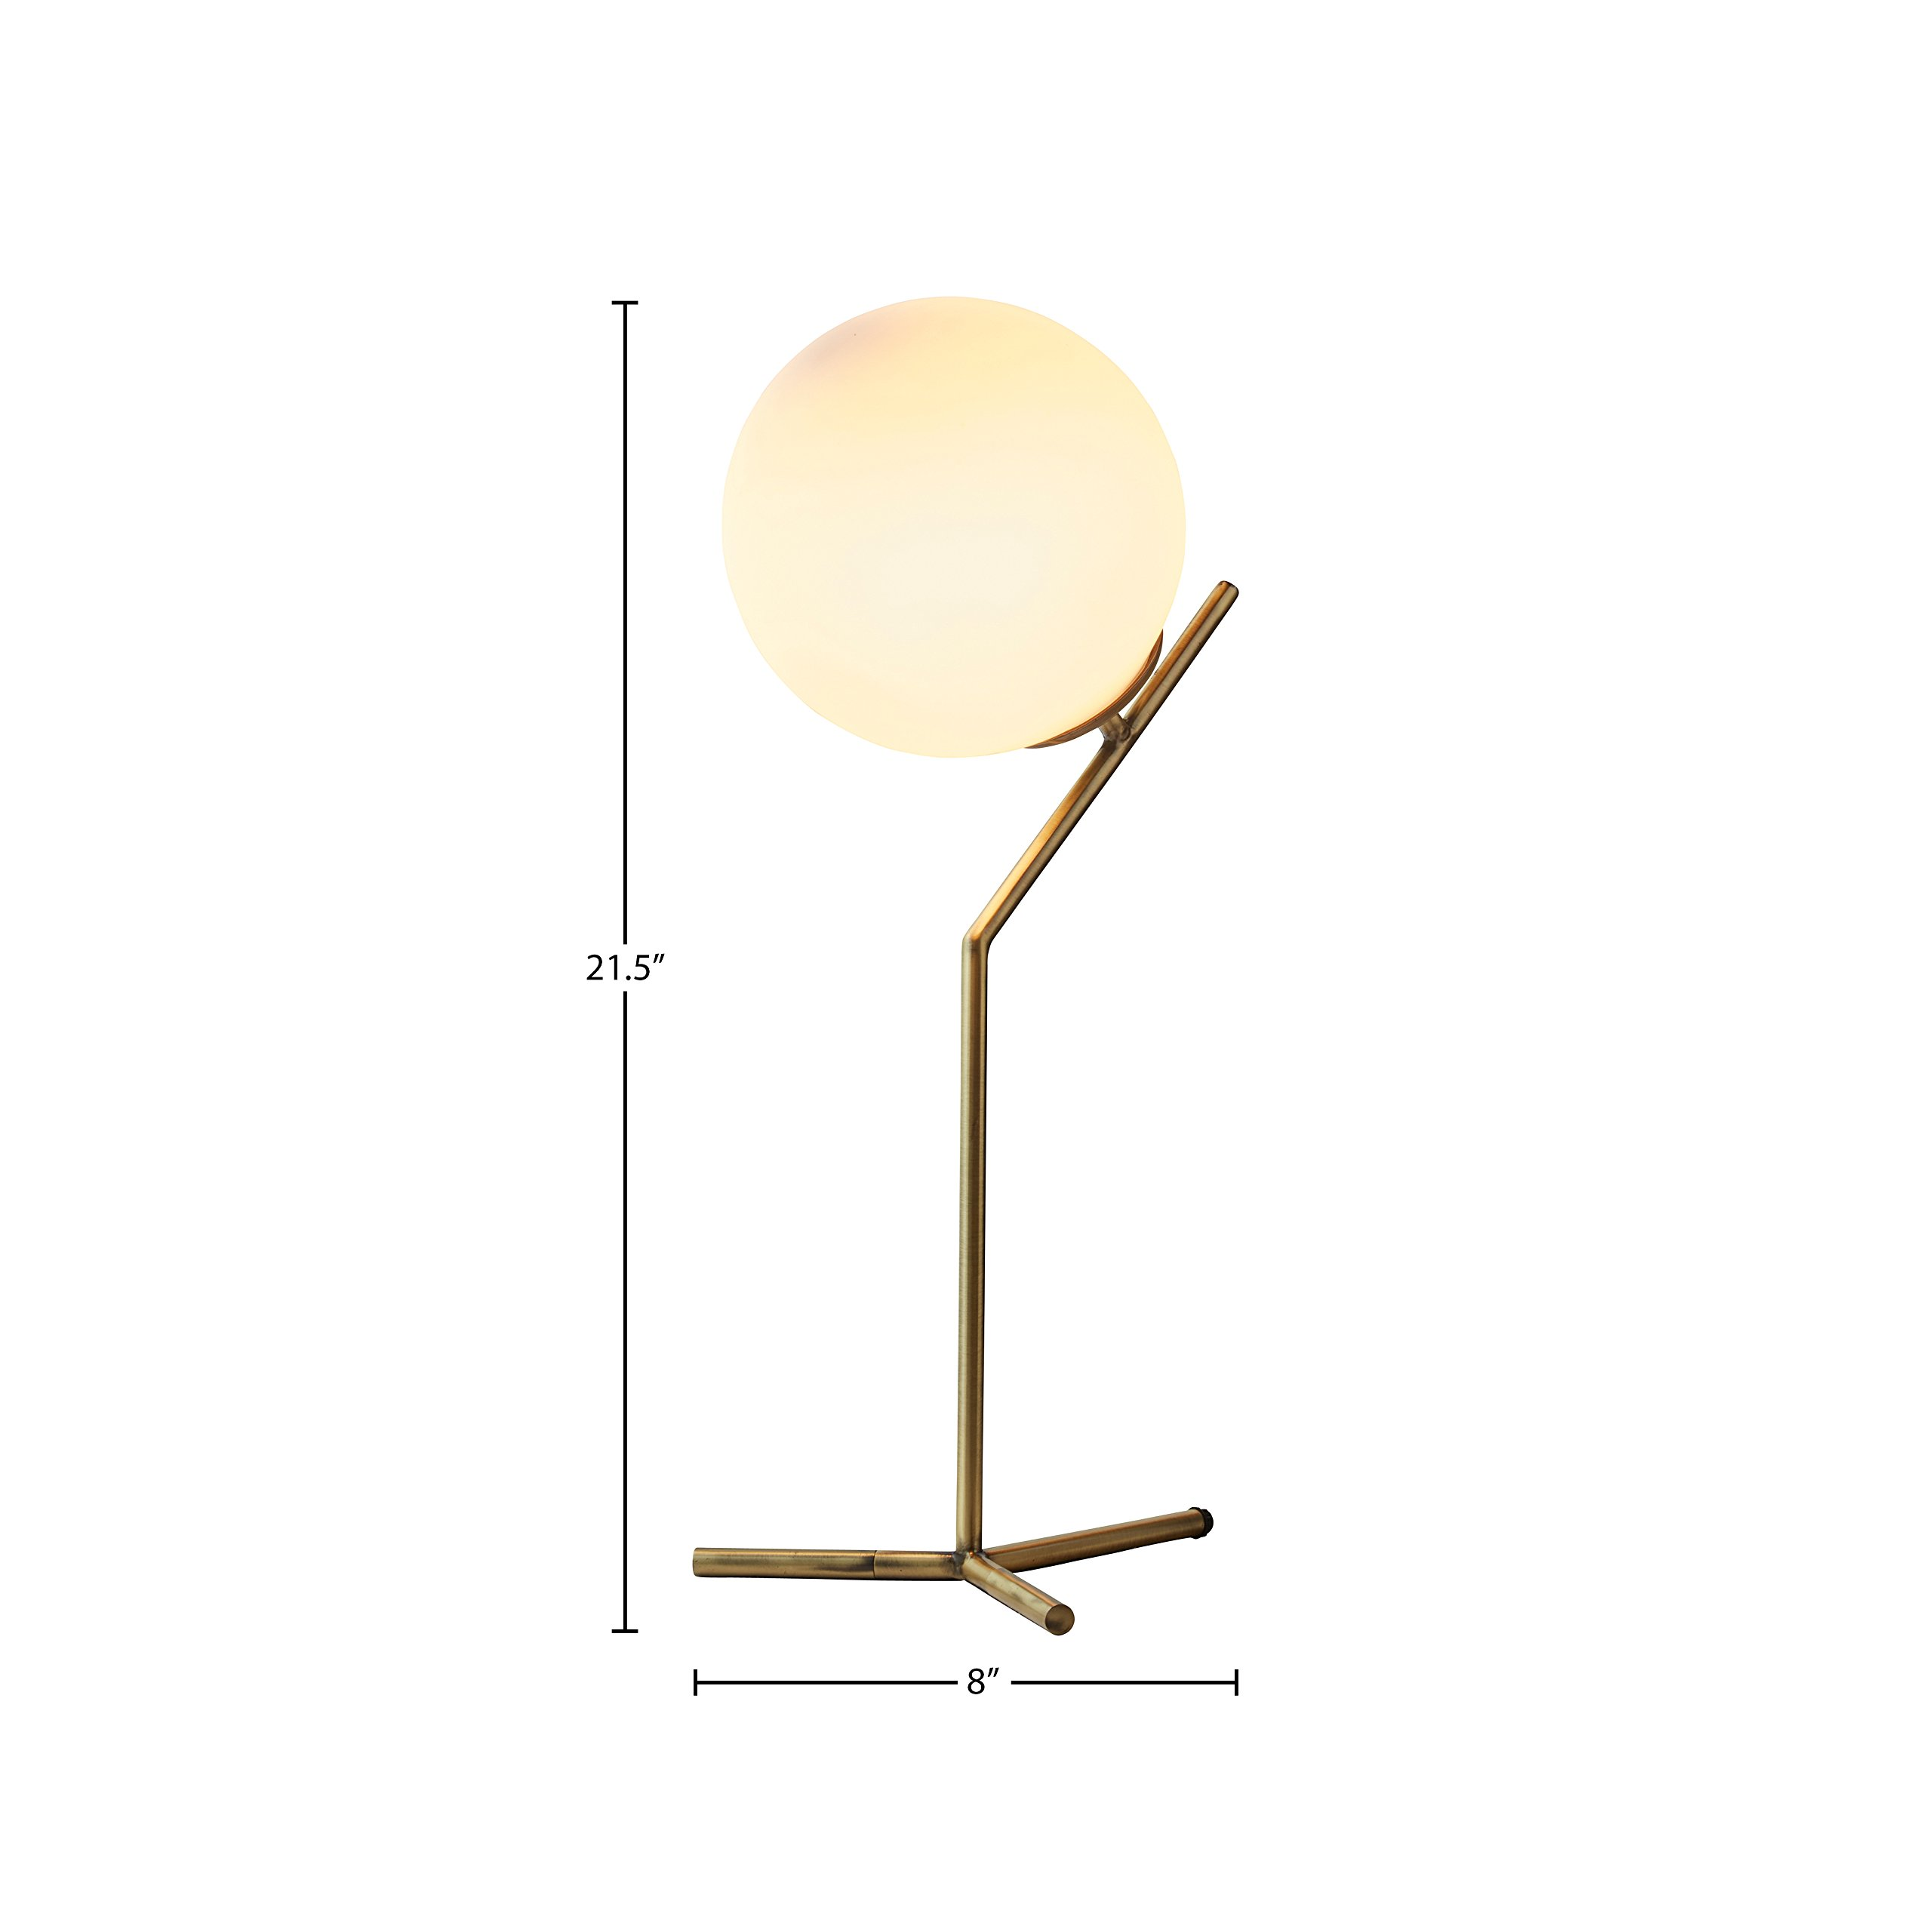 Rivet Glass Ball and Angled Metal Table Lamp with Bulb, 21.5''H, Brass by Rivet (Image #6)